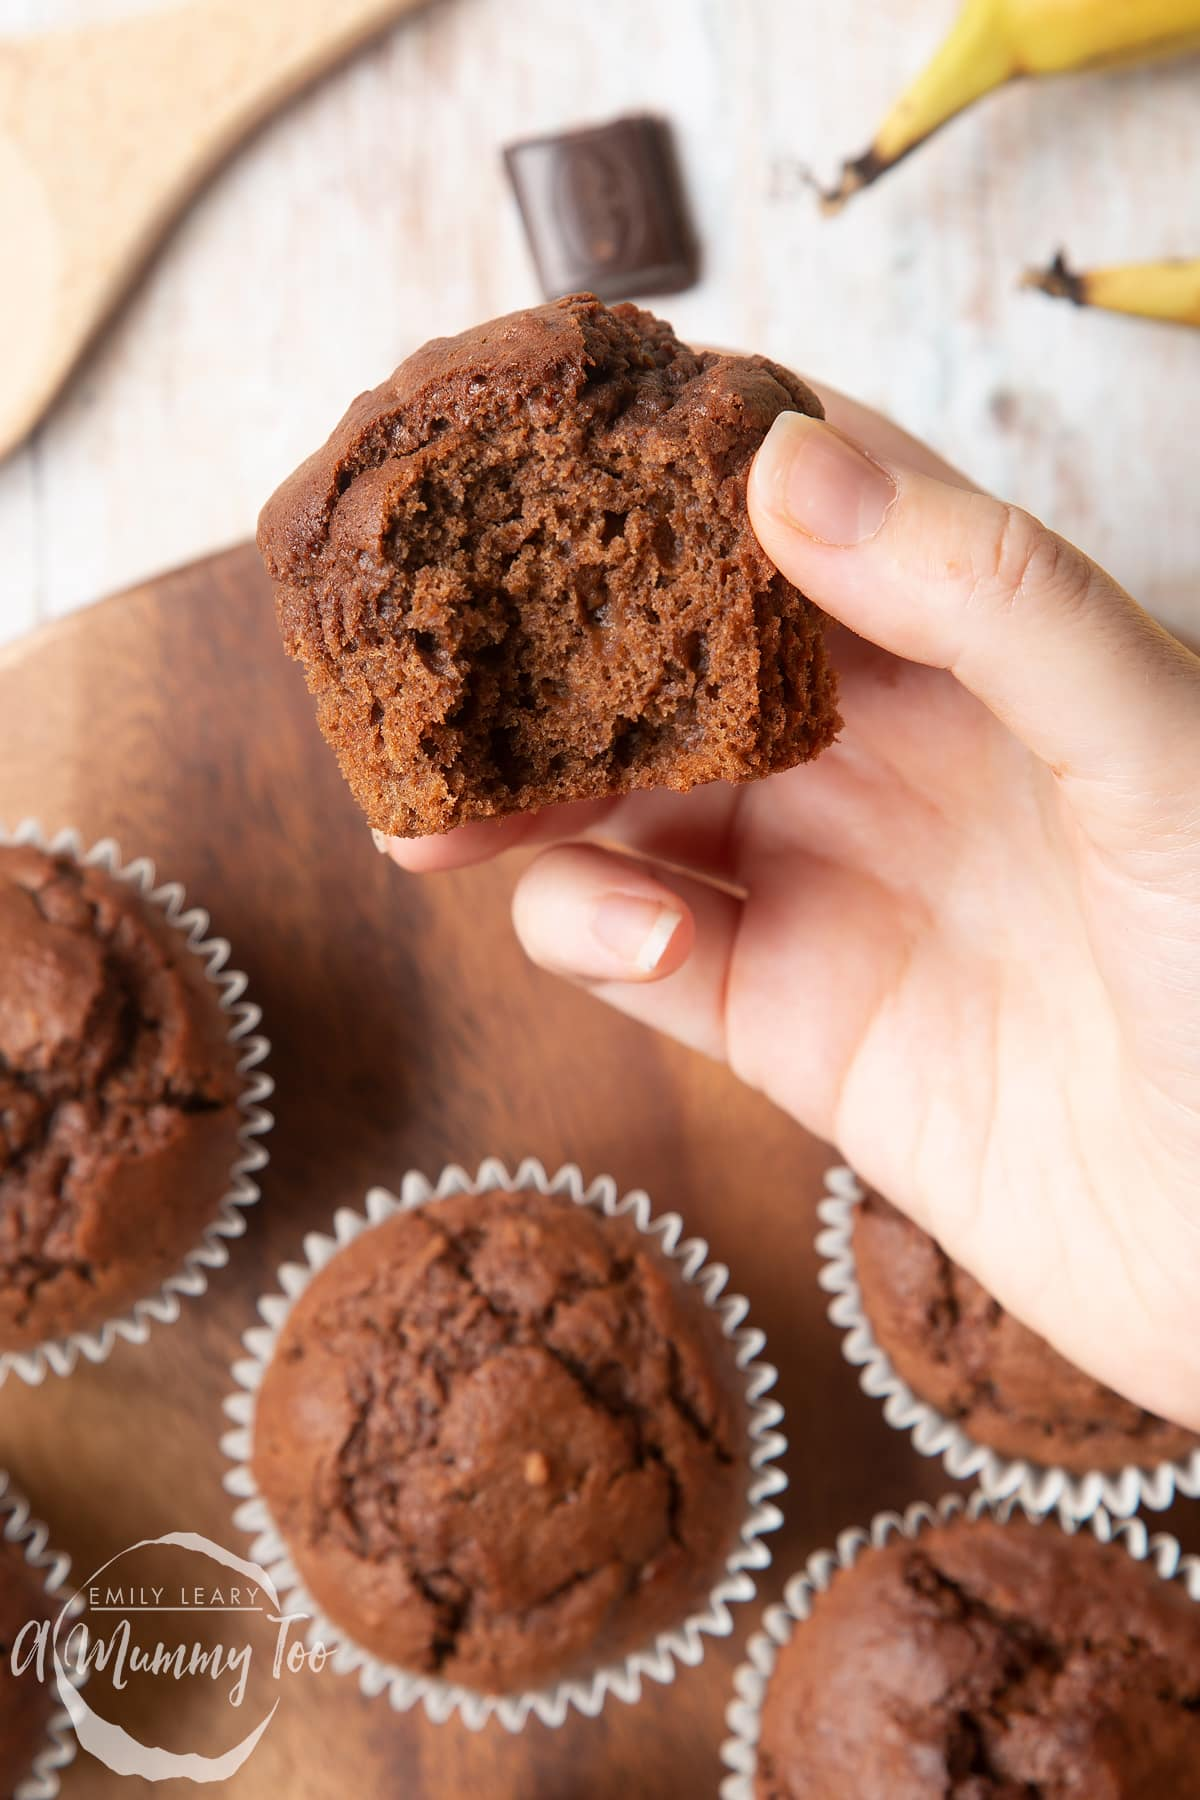 front angle shot of a hand holding a half eaten banana and chocolate muffins with a mummy too logo in the lower-left corner